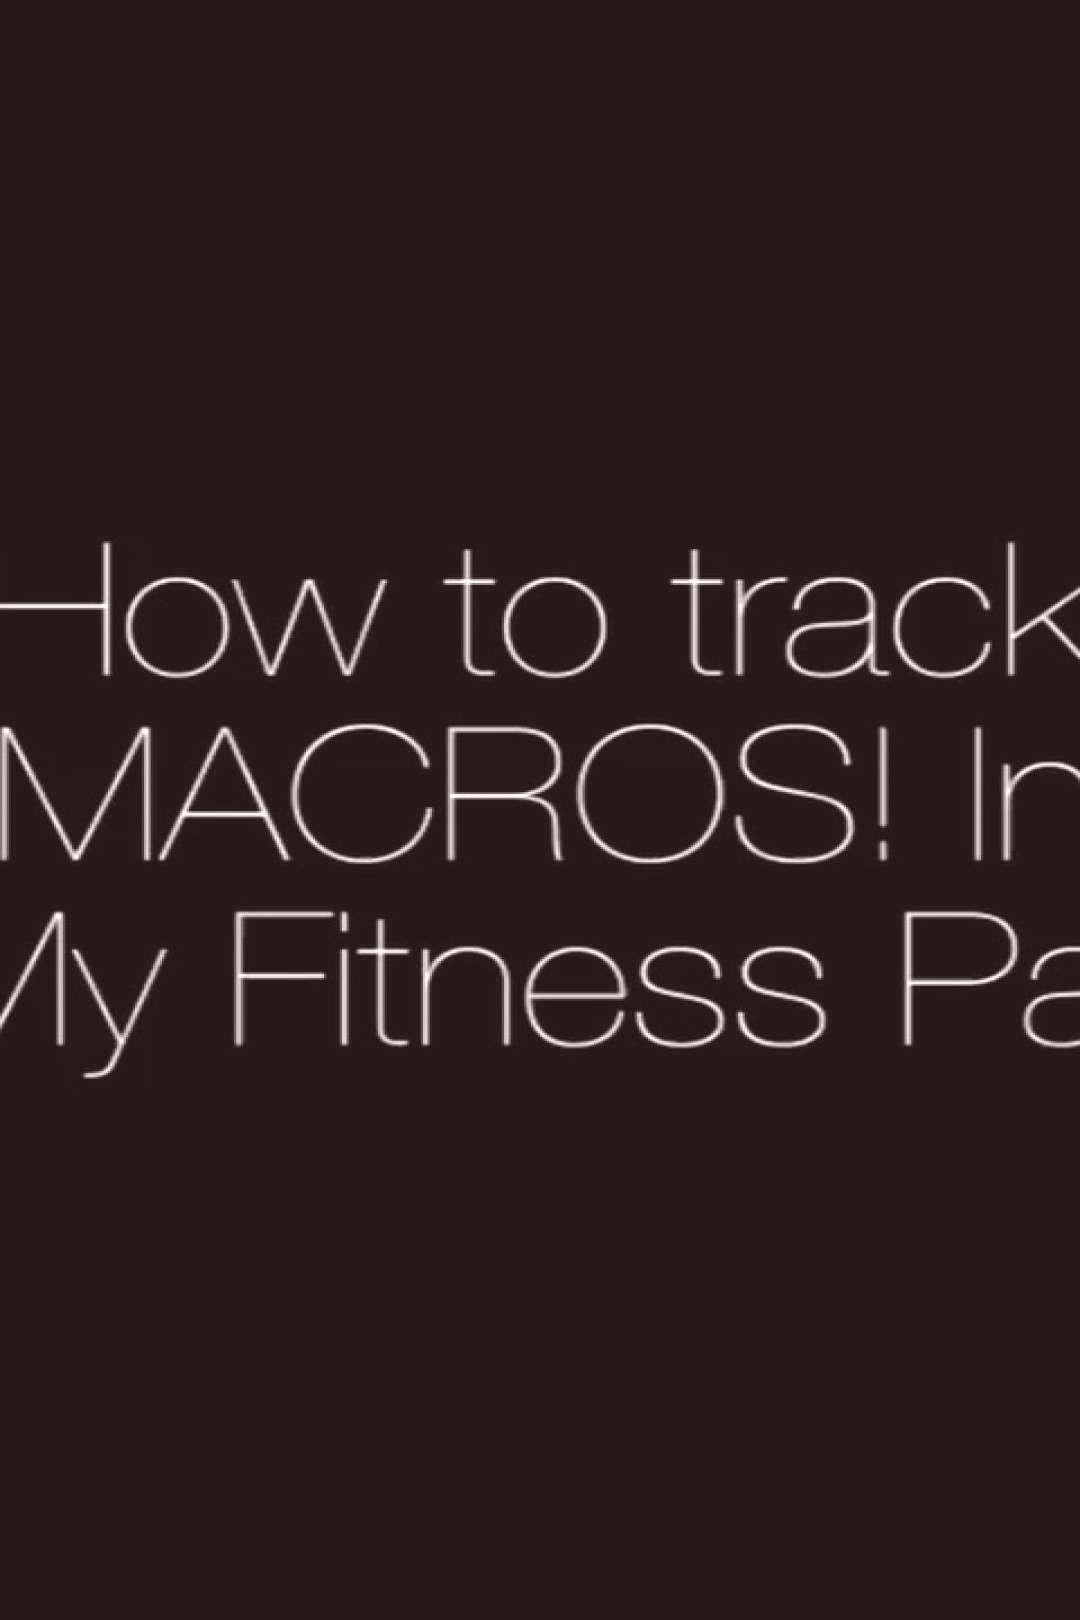 Do you struggle with nutrition? - Tracking your macronutrients ca